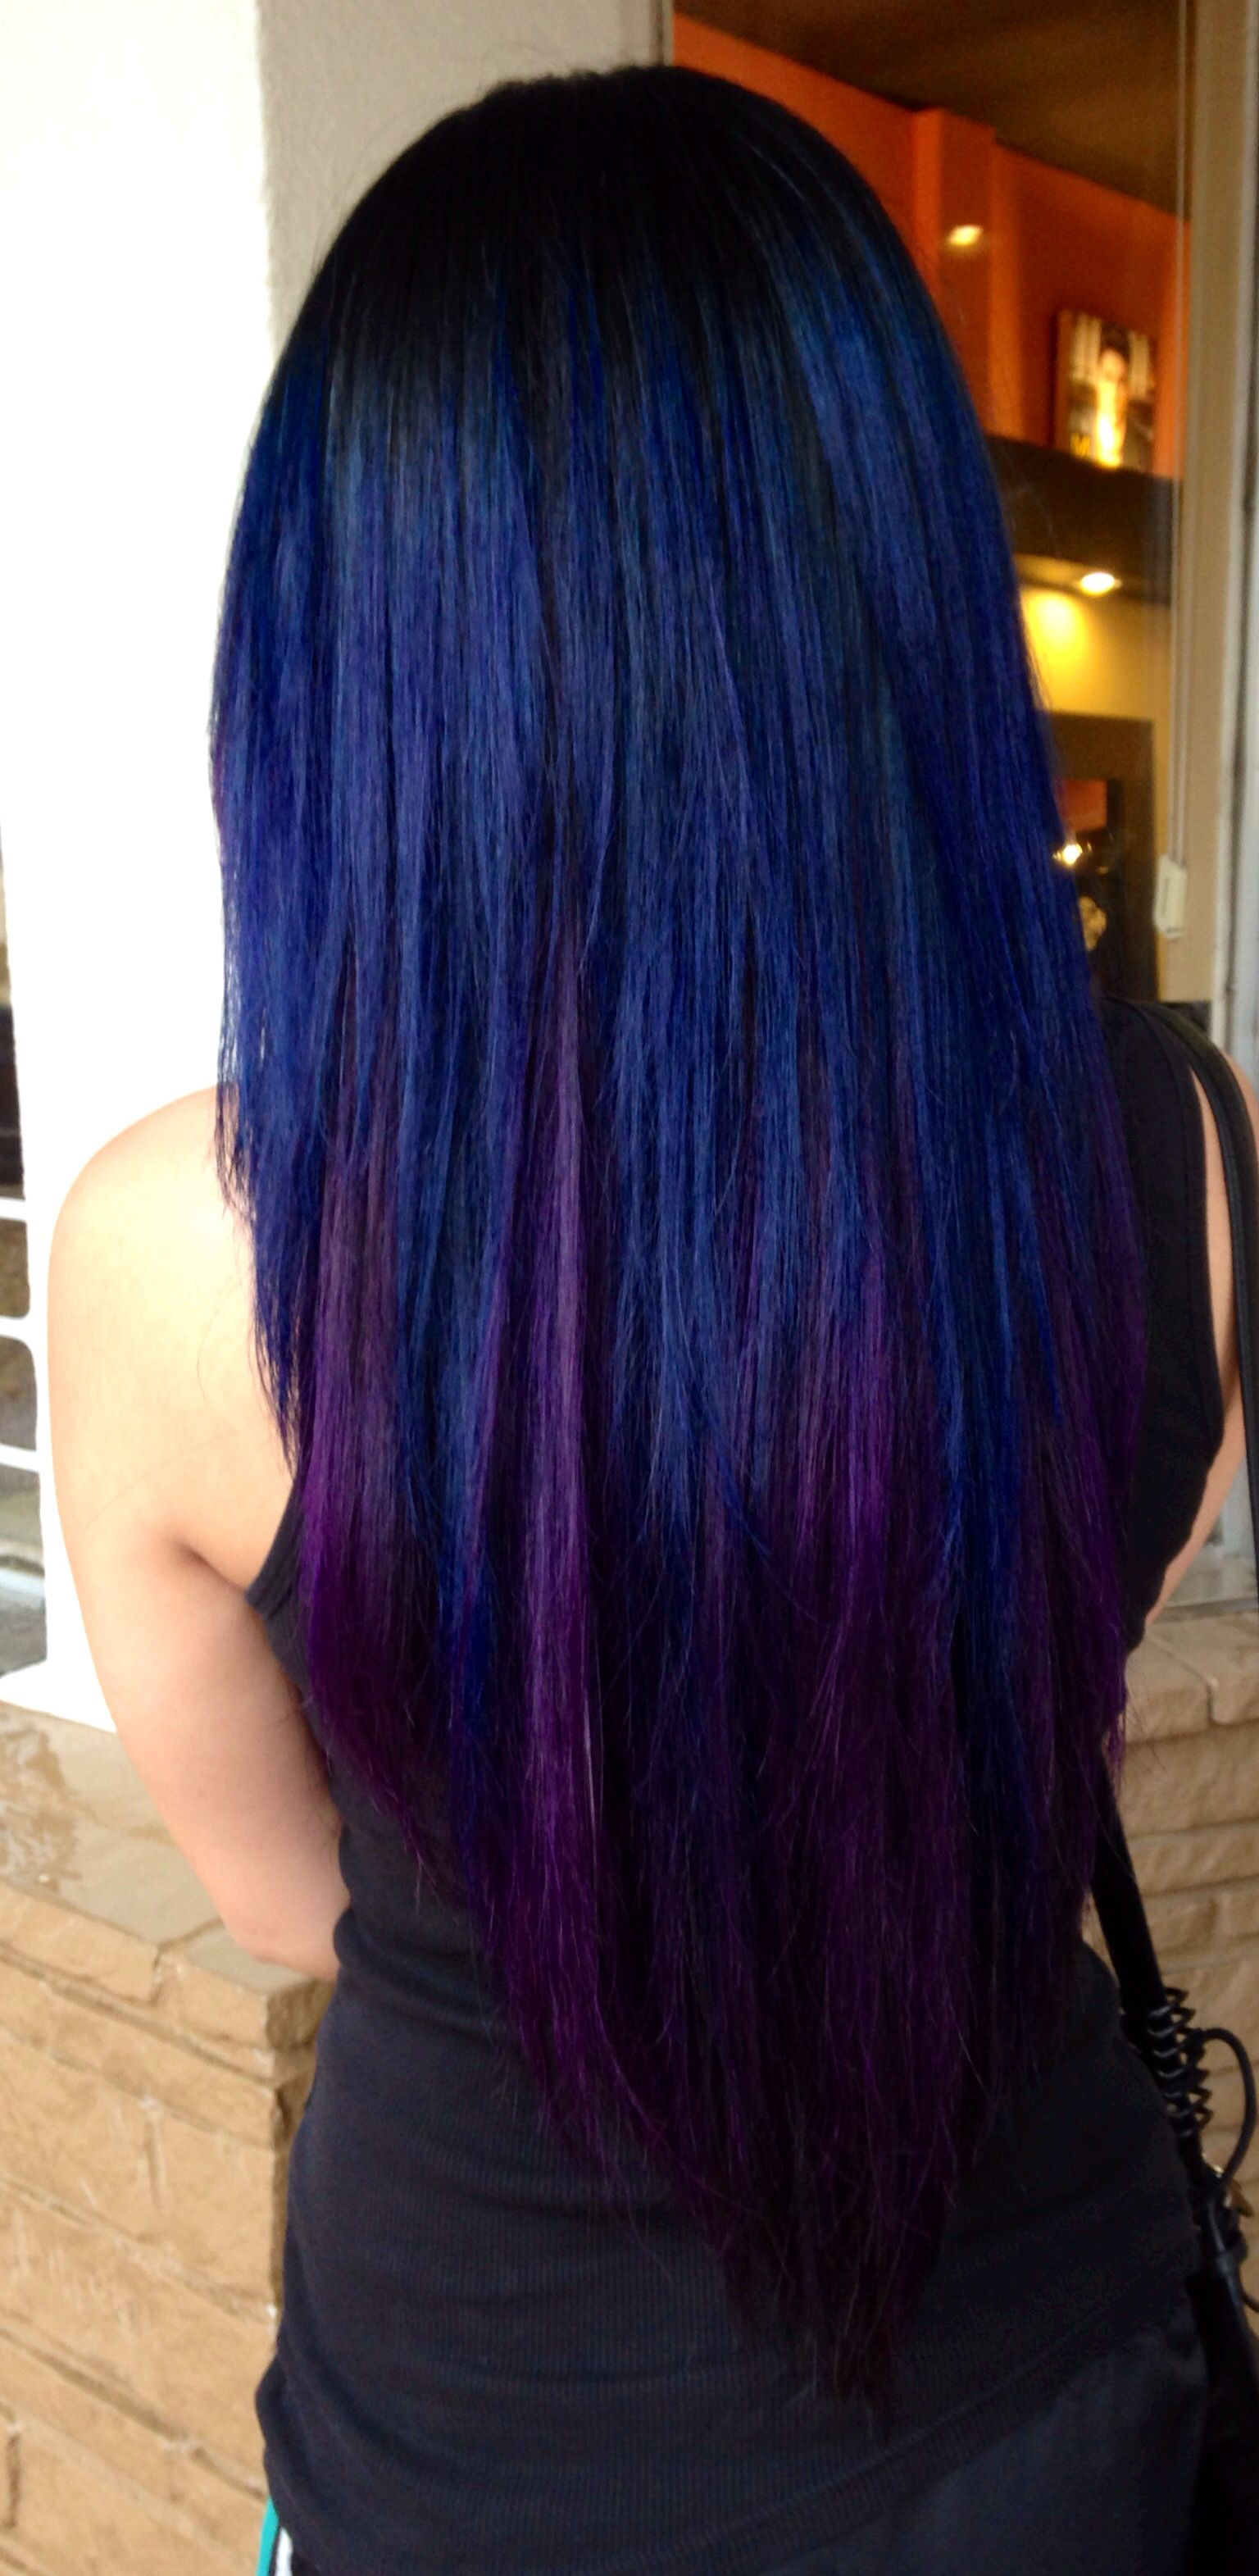 Pin By Melody Khotpanya On Hair And Beauty Hair Color For Black Hair Blue Hair Dark Blue Hair